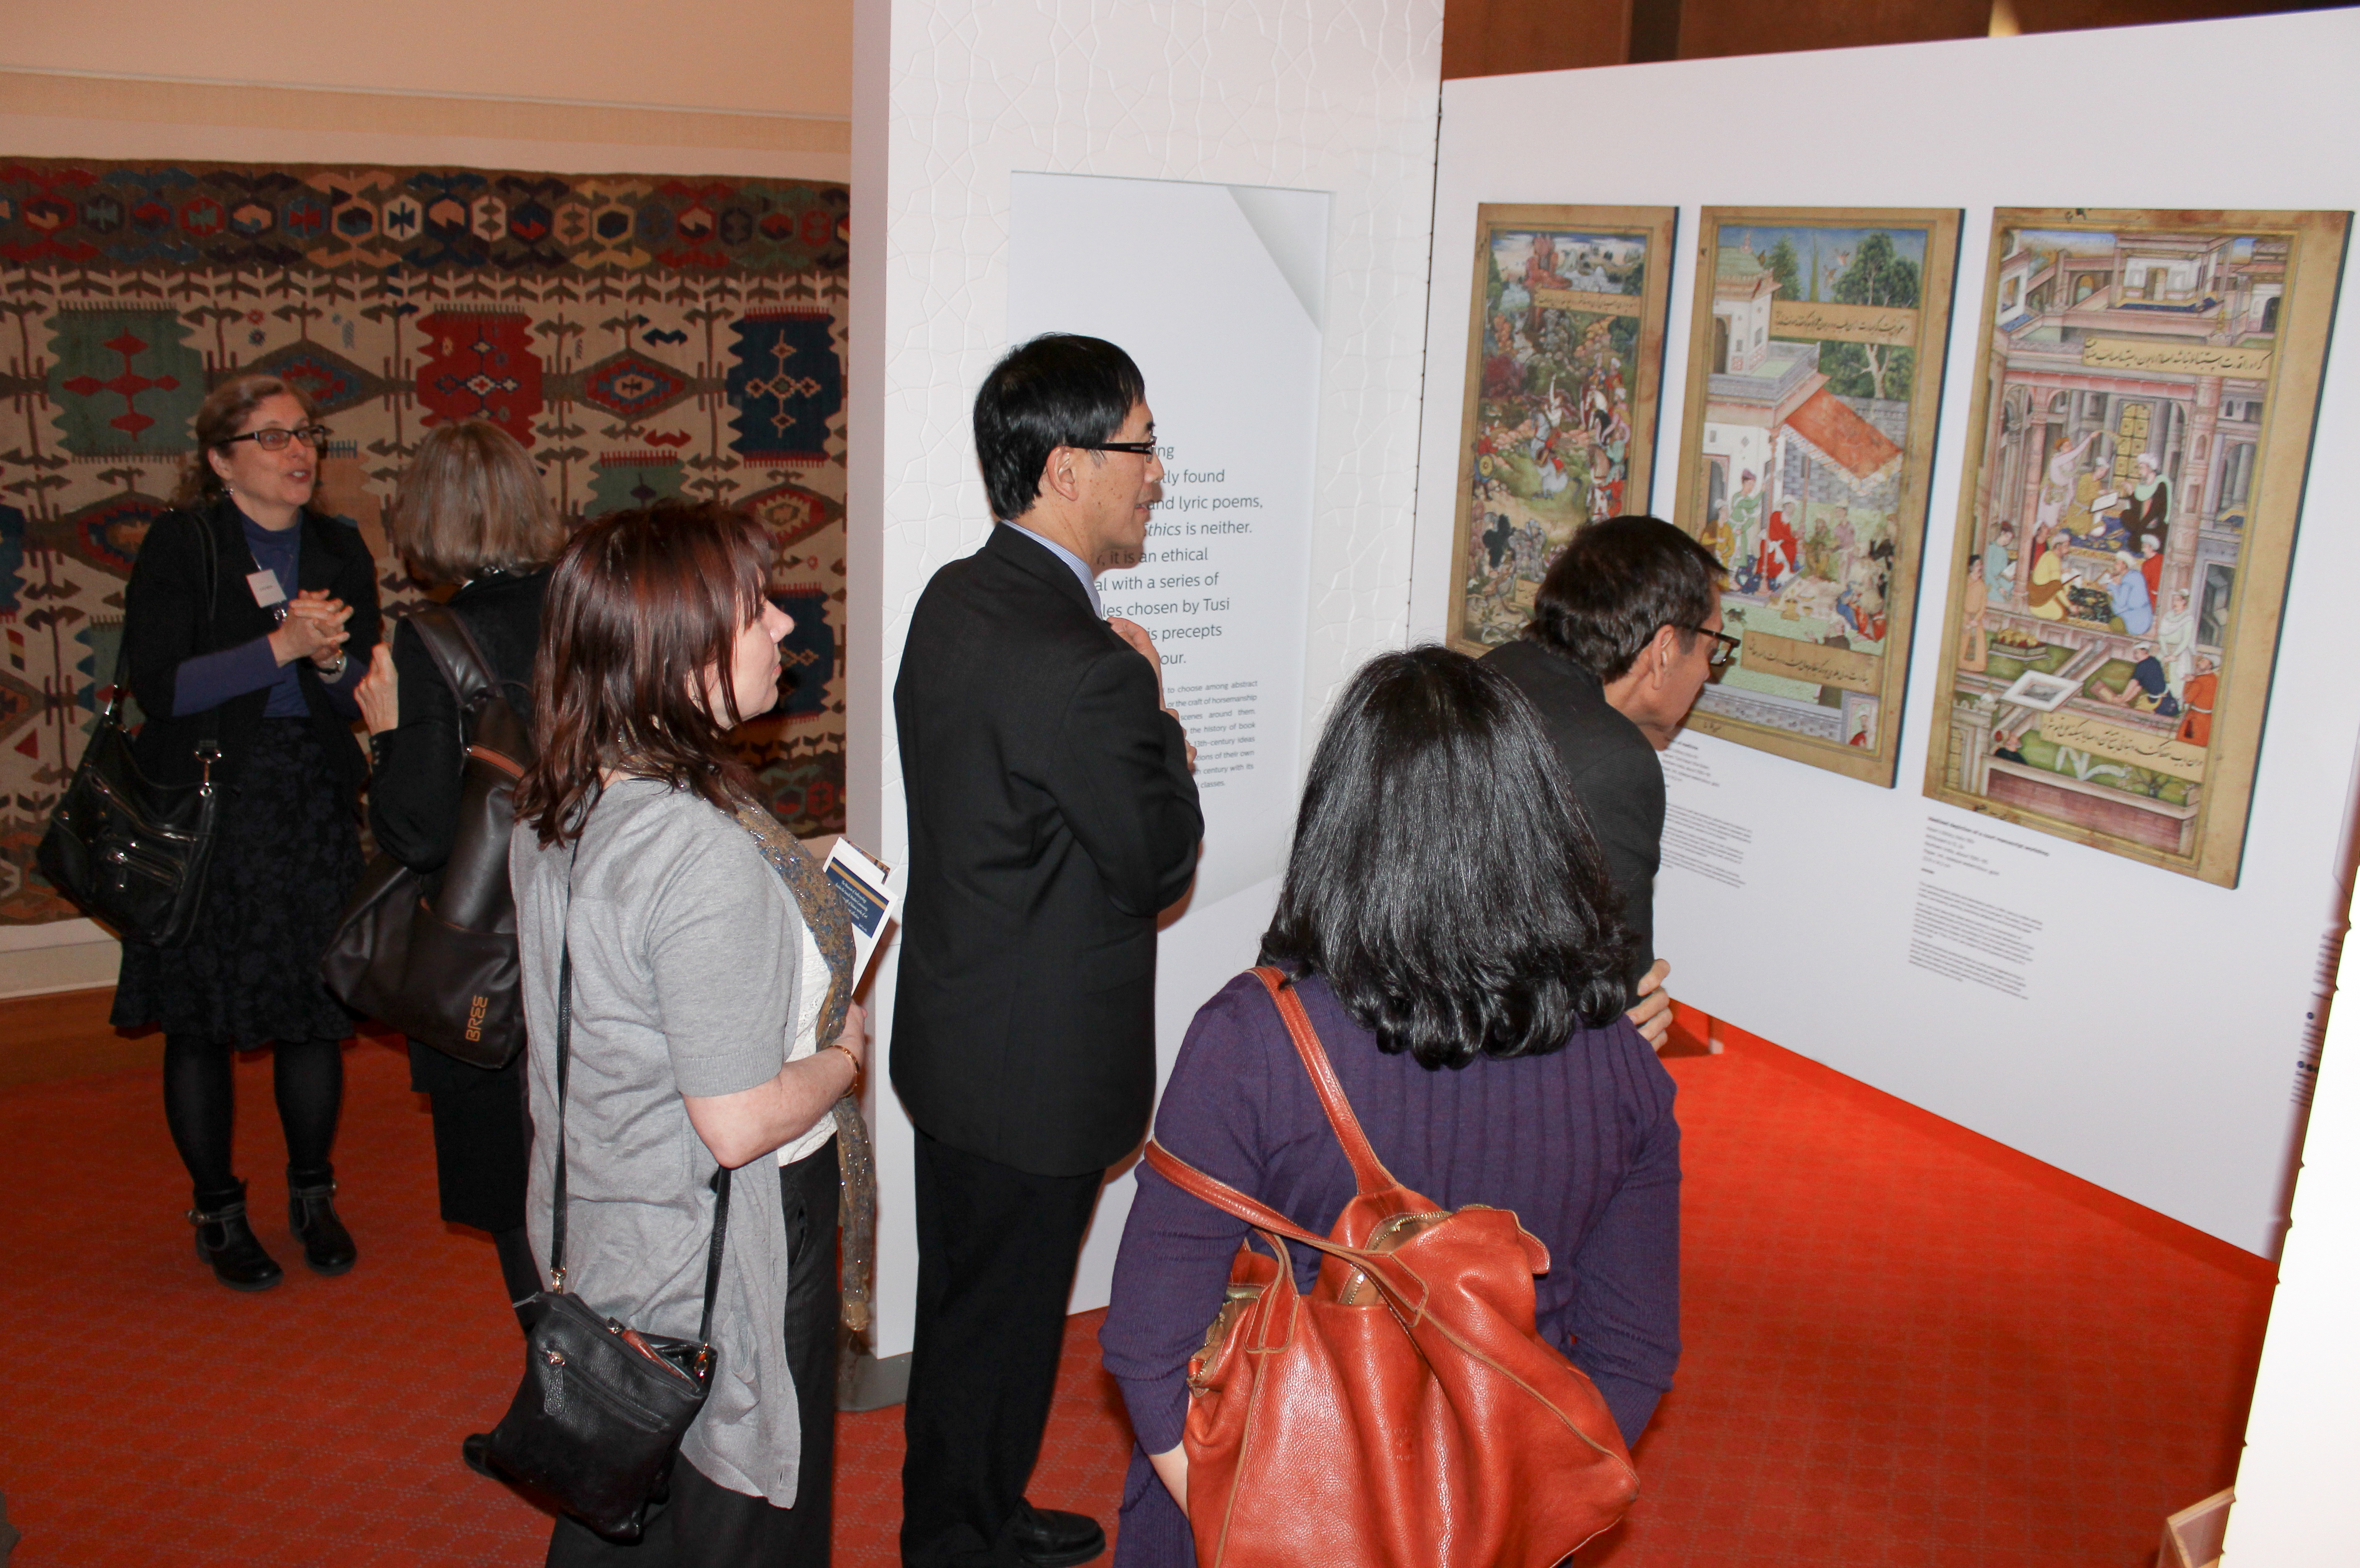 Visitors take in an exhibition on Nasir's Ethics, a manuscript in the Aga Khan Museum collection. Photo: Hakam Bhaloo